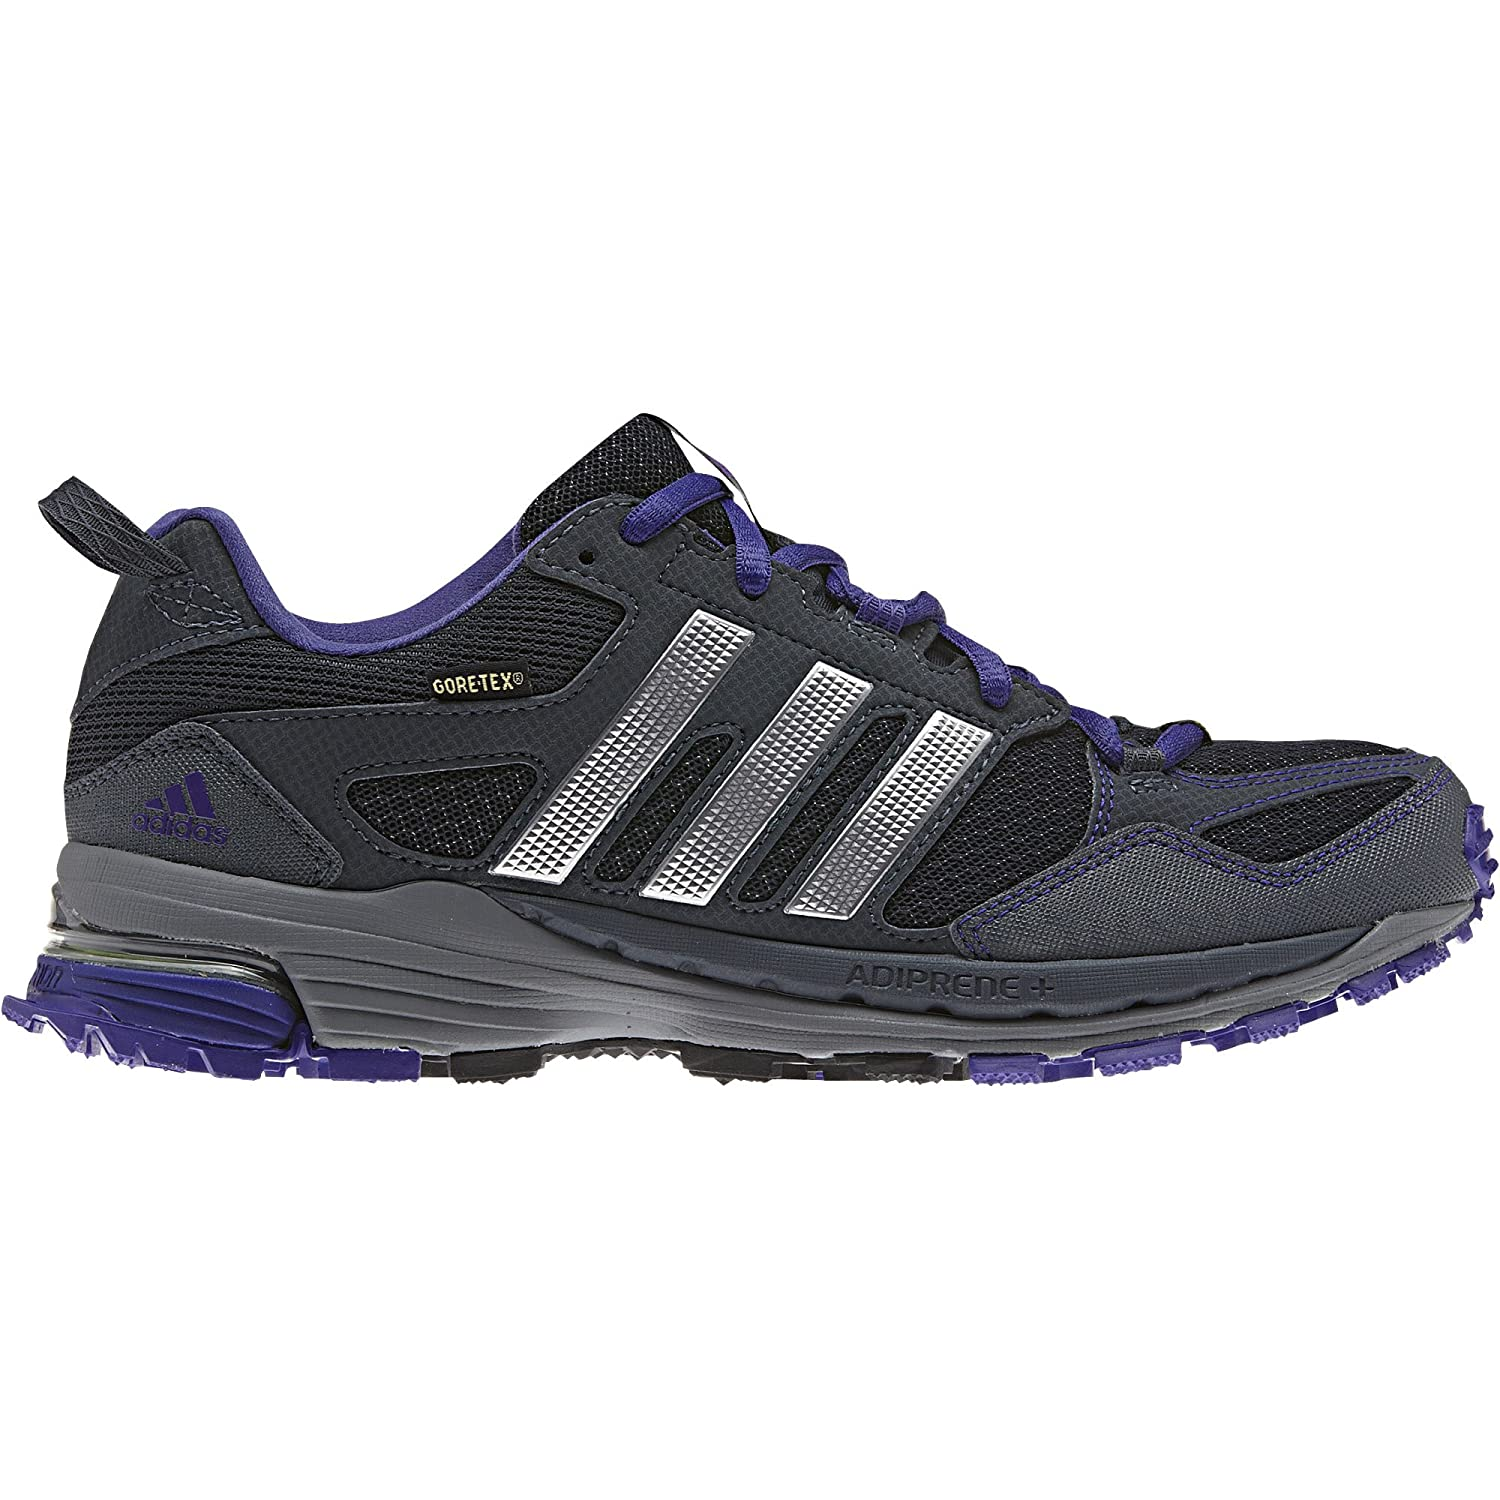 adidas Supernova Riot 5 GTX women GRAU G97233 Size: UK 9